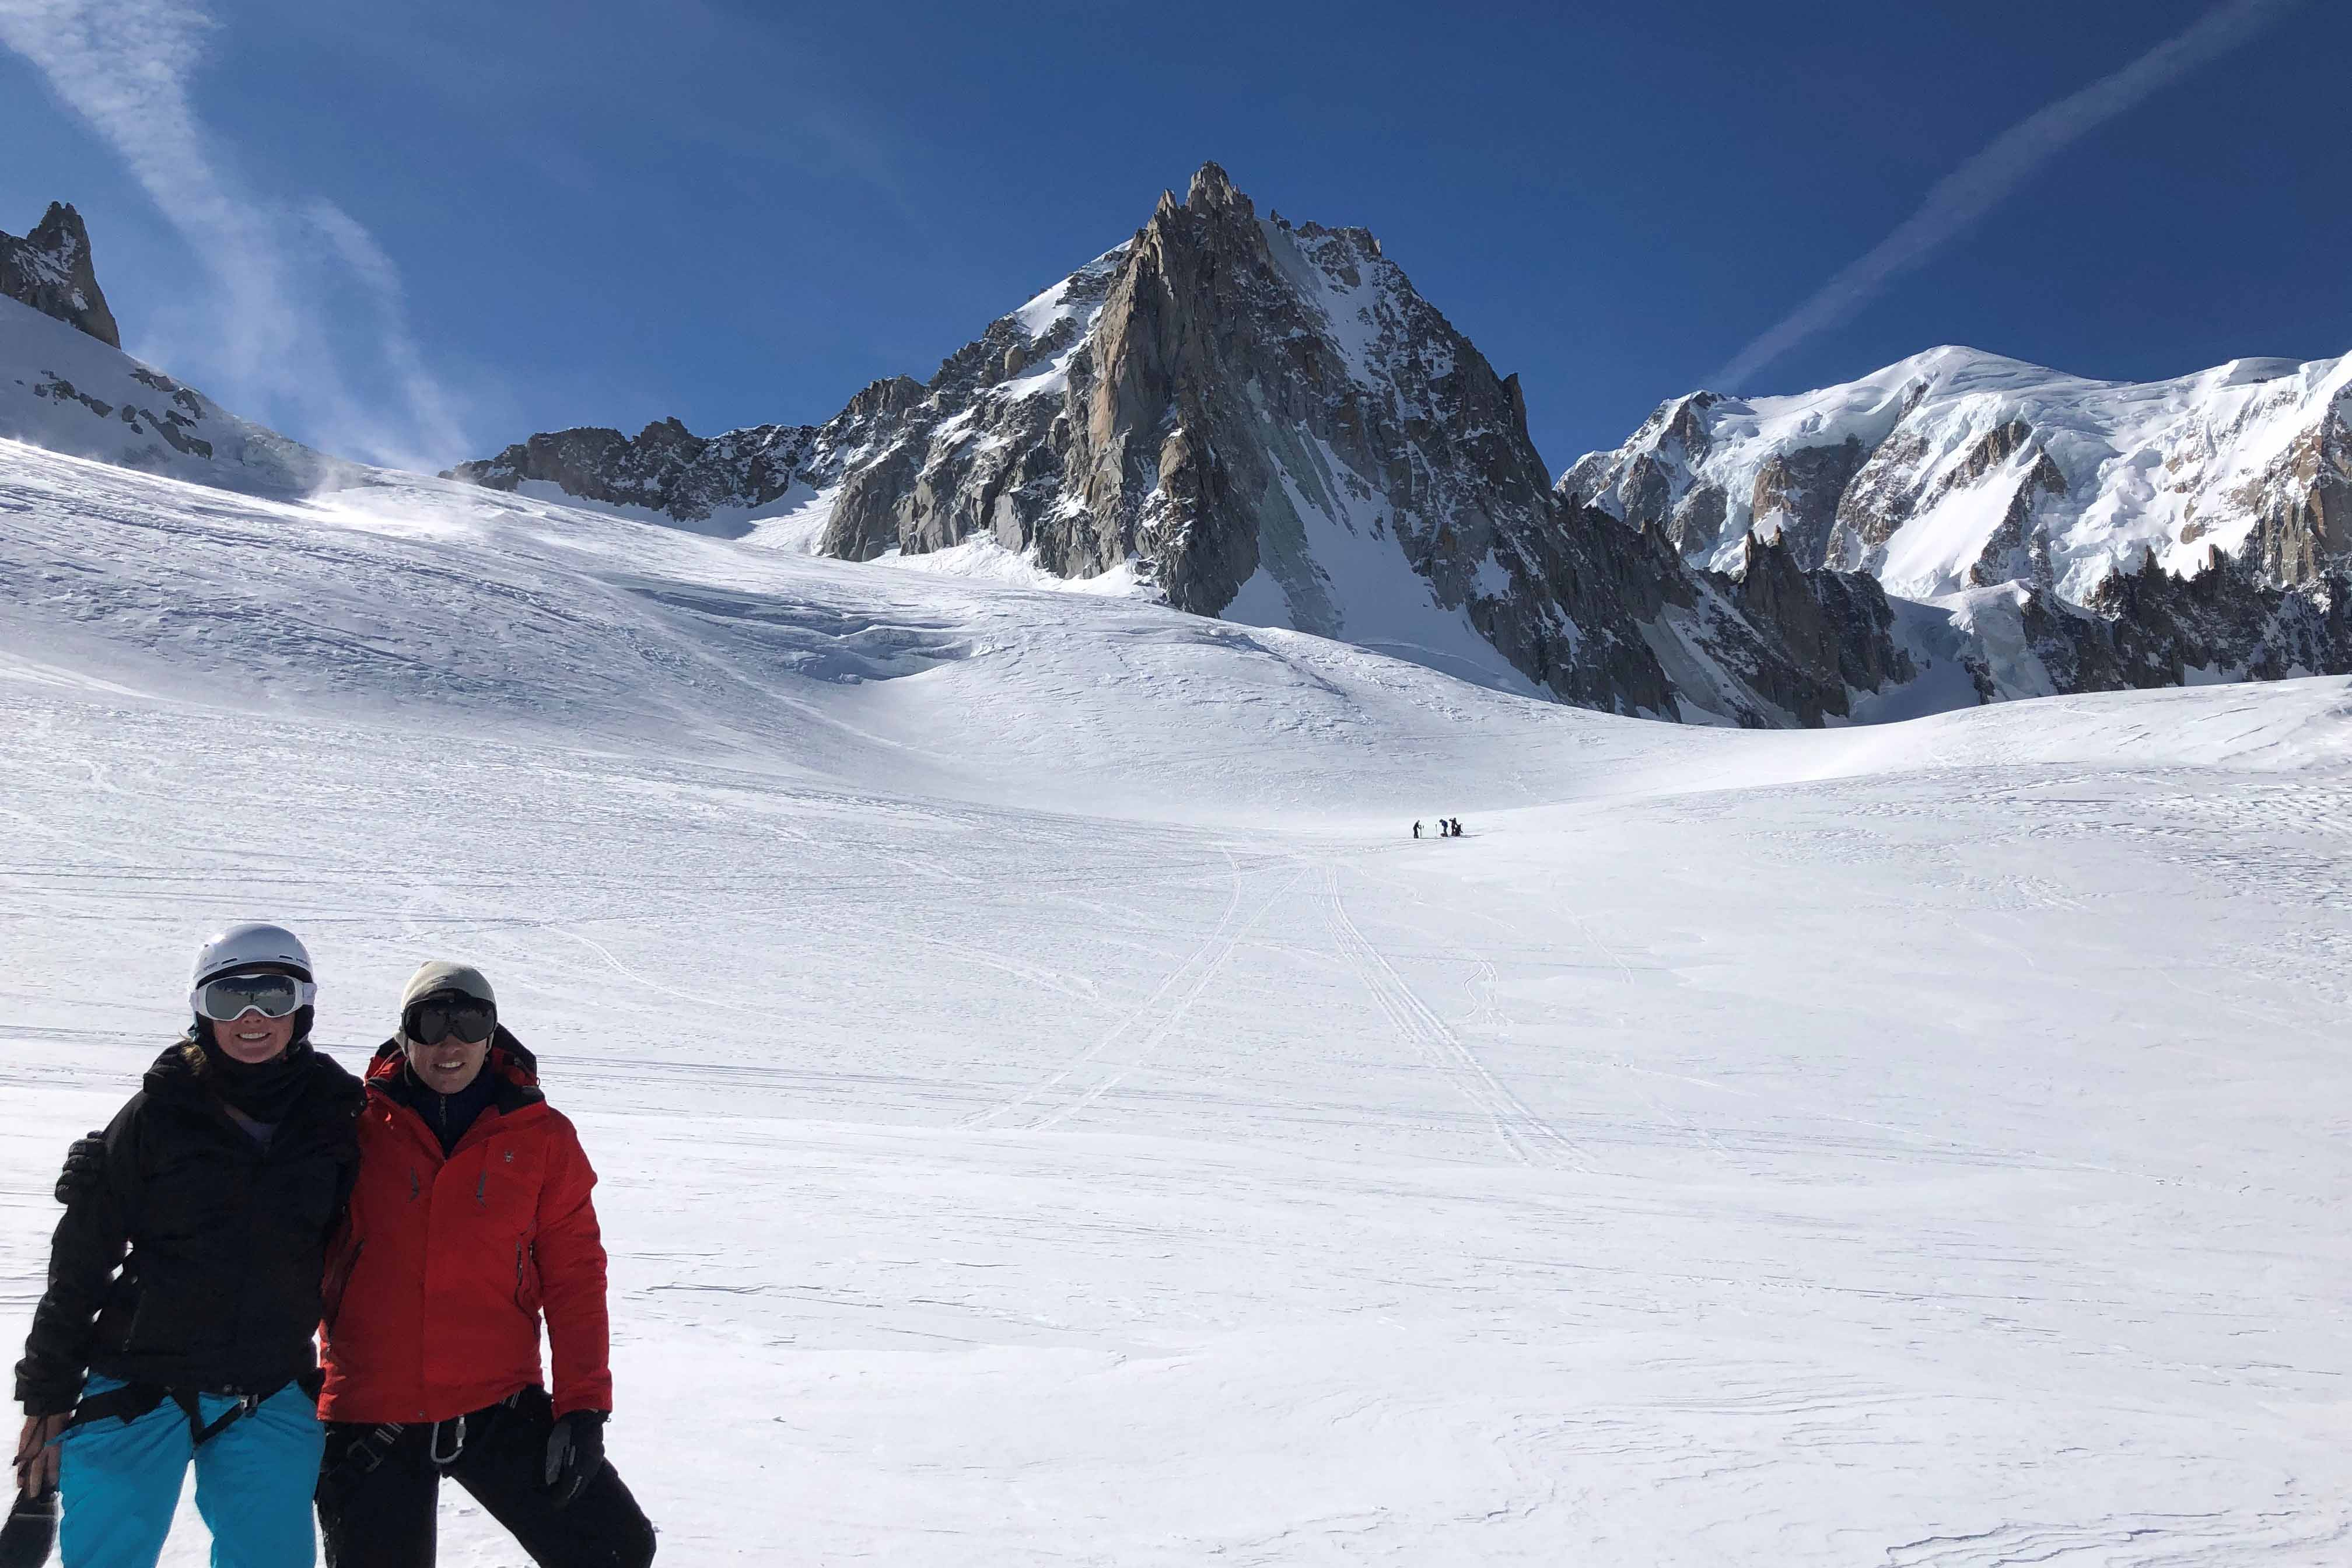 Alycia Inglis recently went to Chamonix in France to ski the famous La Vallee in France to ski the famous La Vallee Blanche, an off-piste route full of Bla nche, an off-piste route full of crevasses and avalanche risks crevasses and avalanche risks